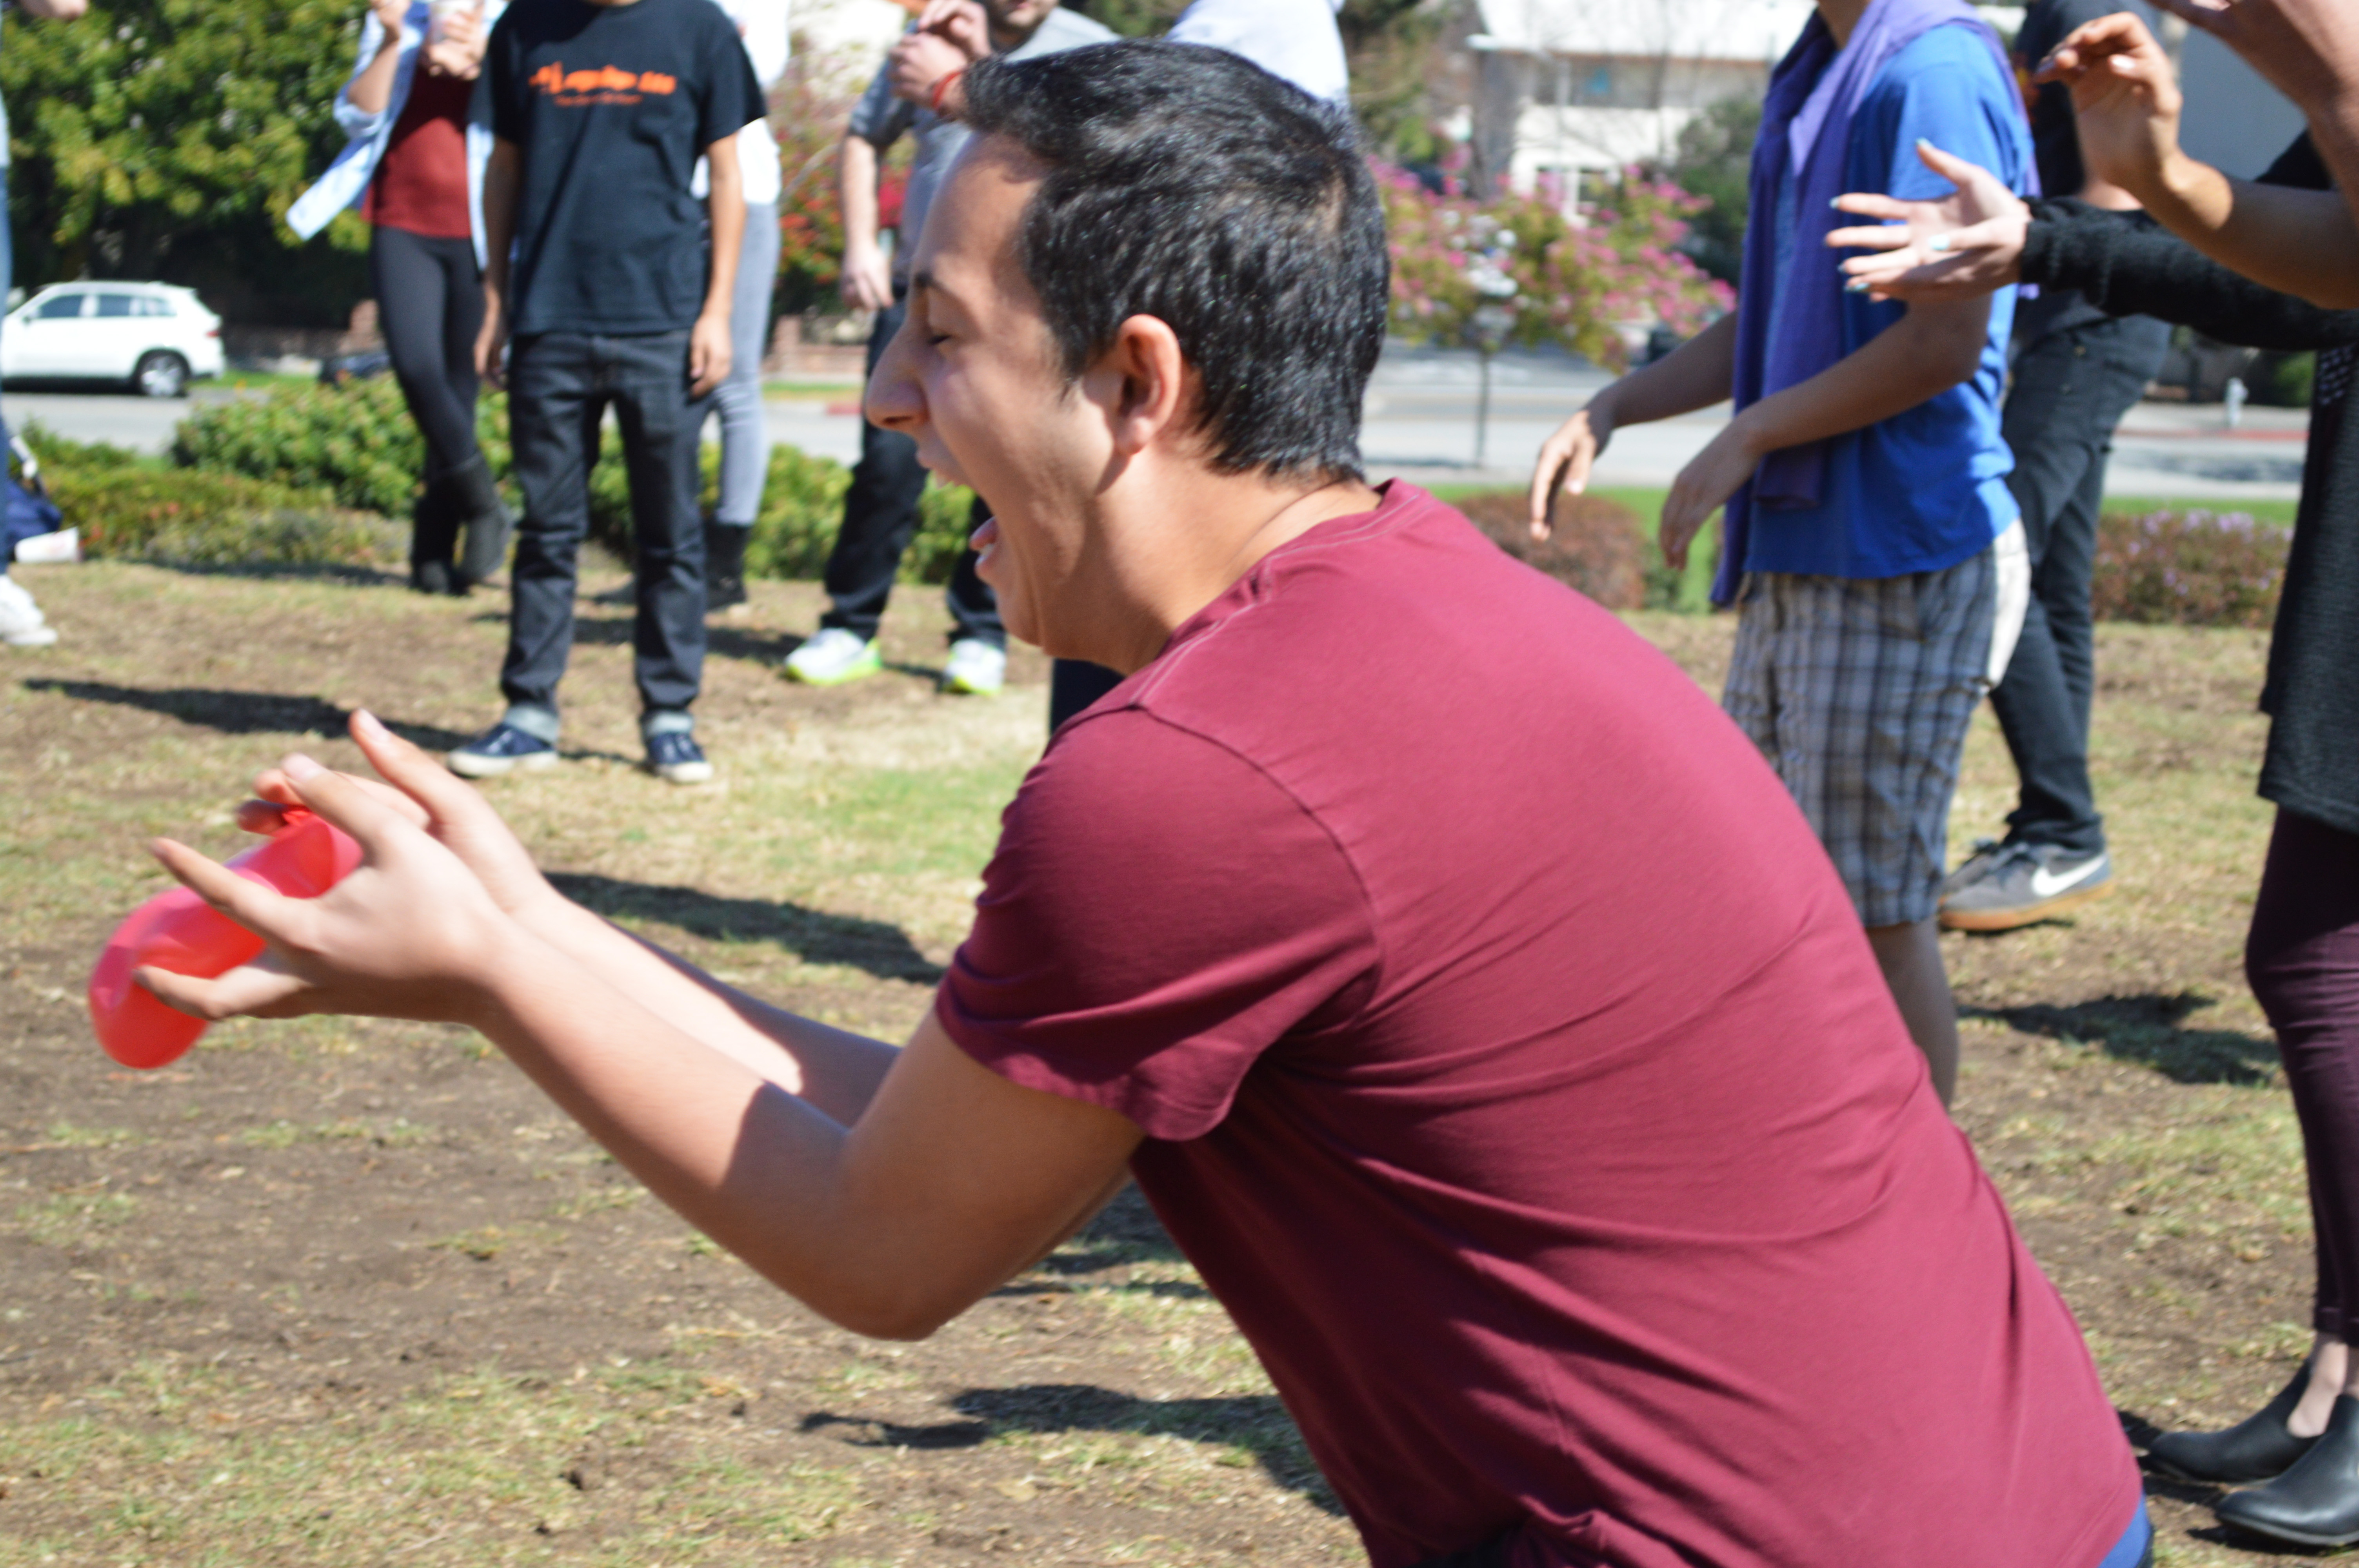 A junior reacts as he successfully catches his partner's water balloon toss, advancing with his partner to the next level.